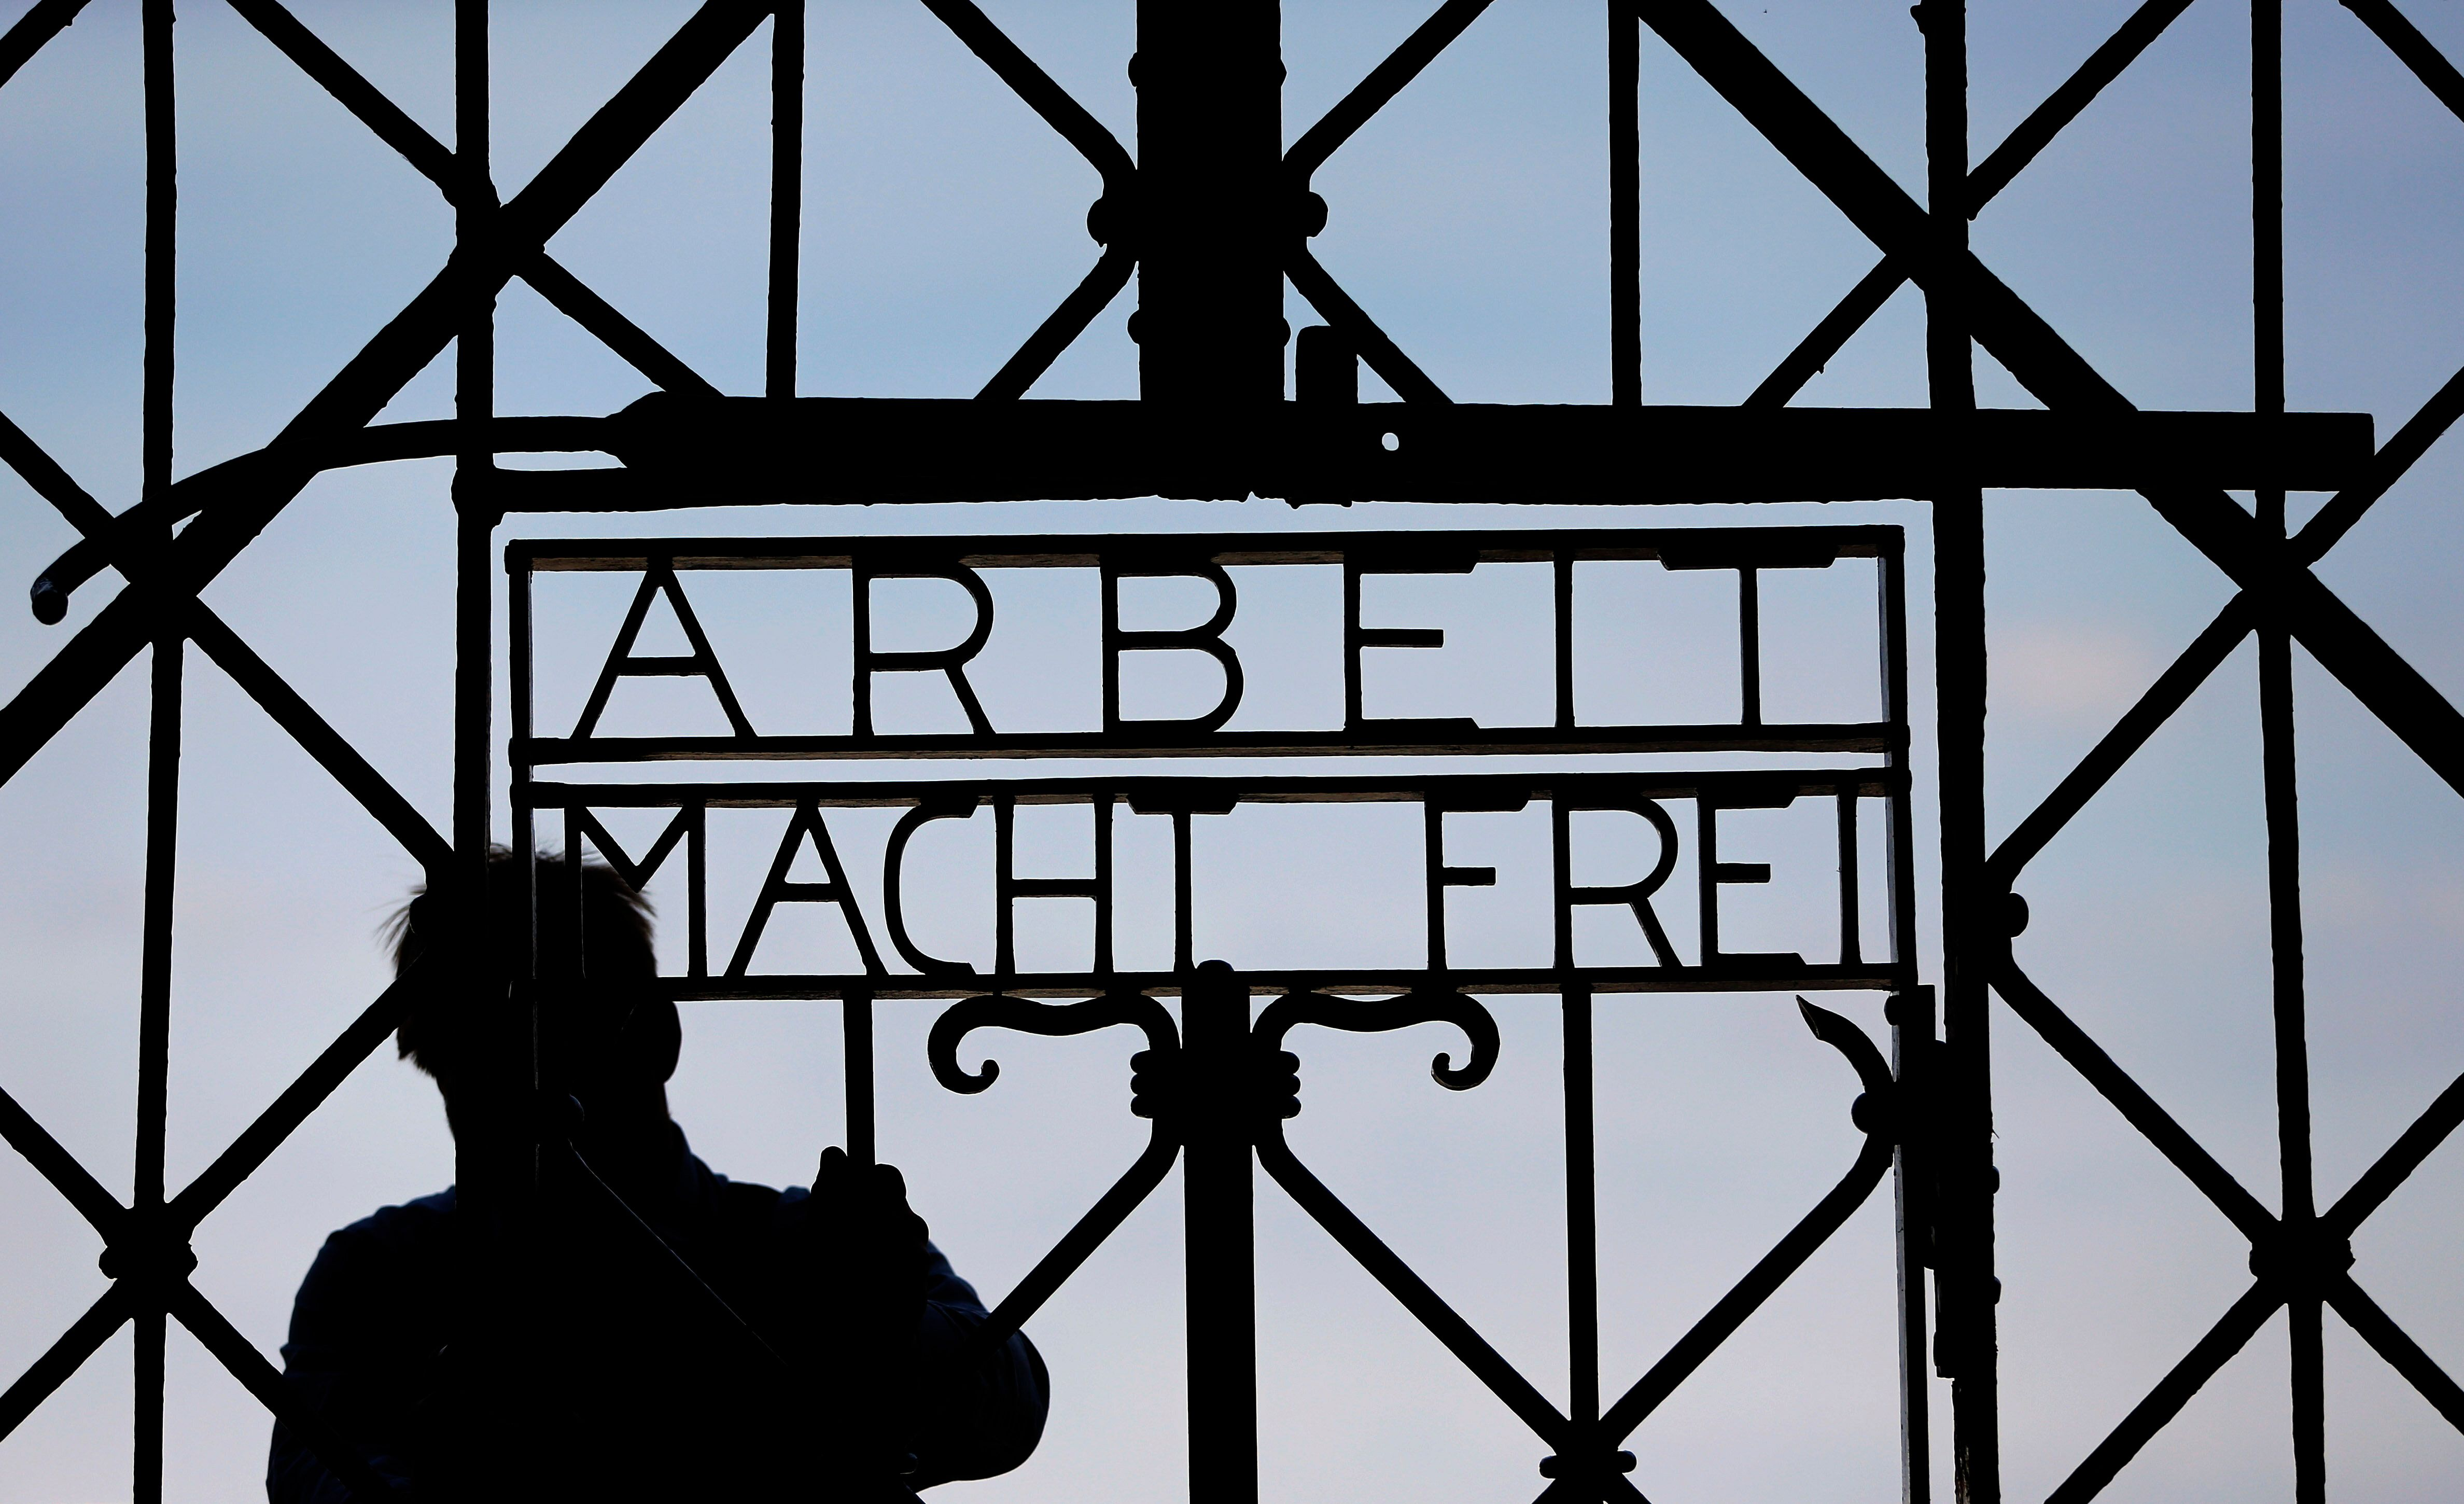 Auschwitz Museum Condemns Use Of Nazi Slogan At Illinois COVID-19 Protest 1